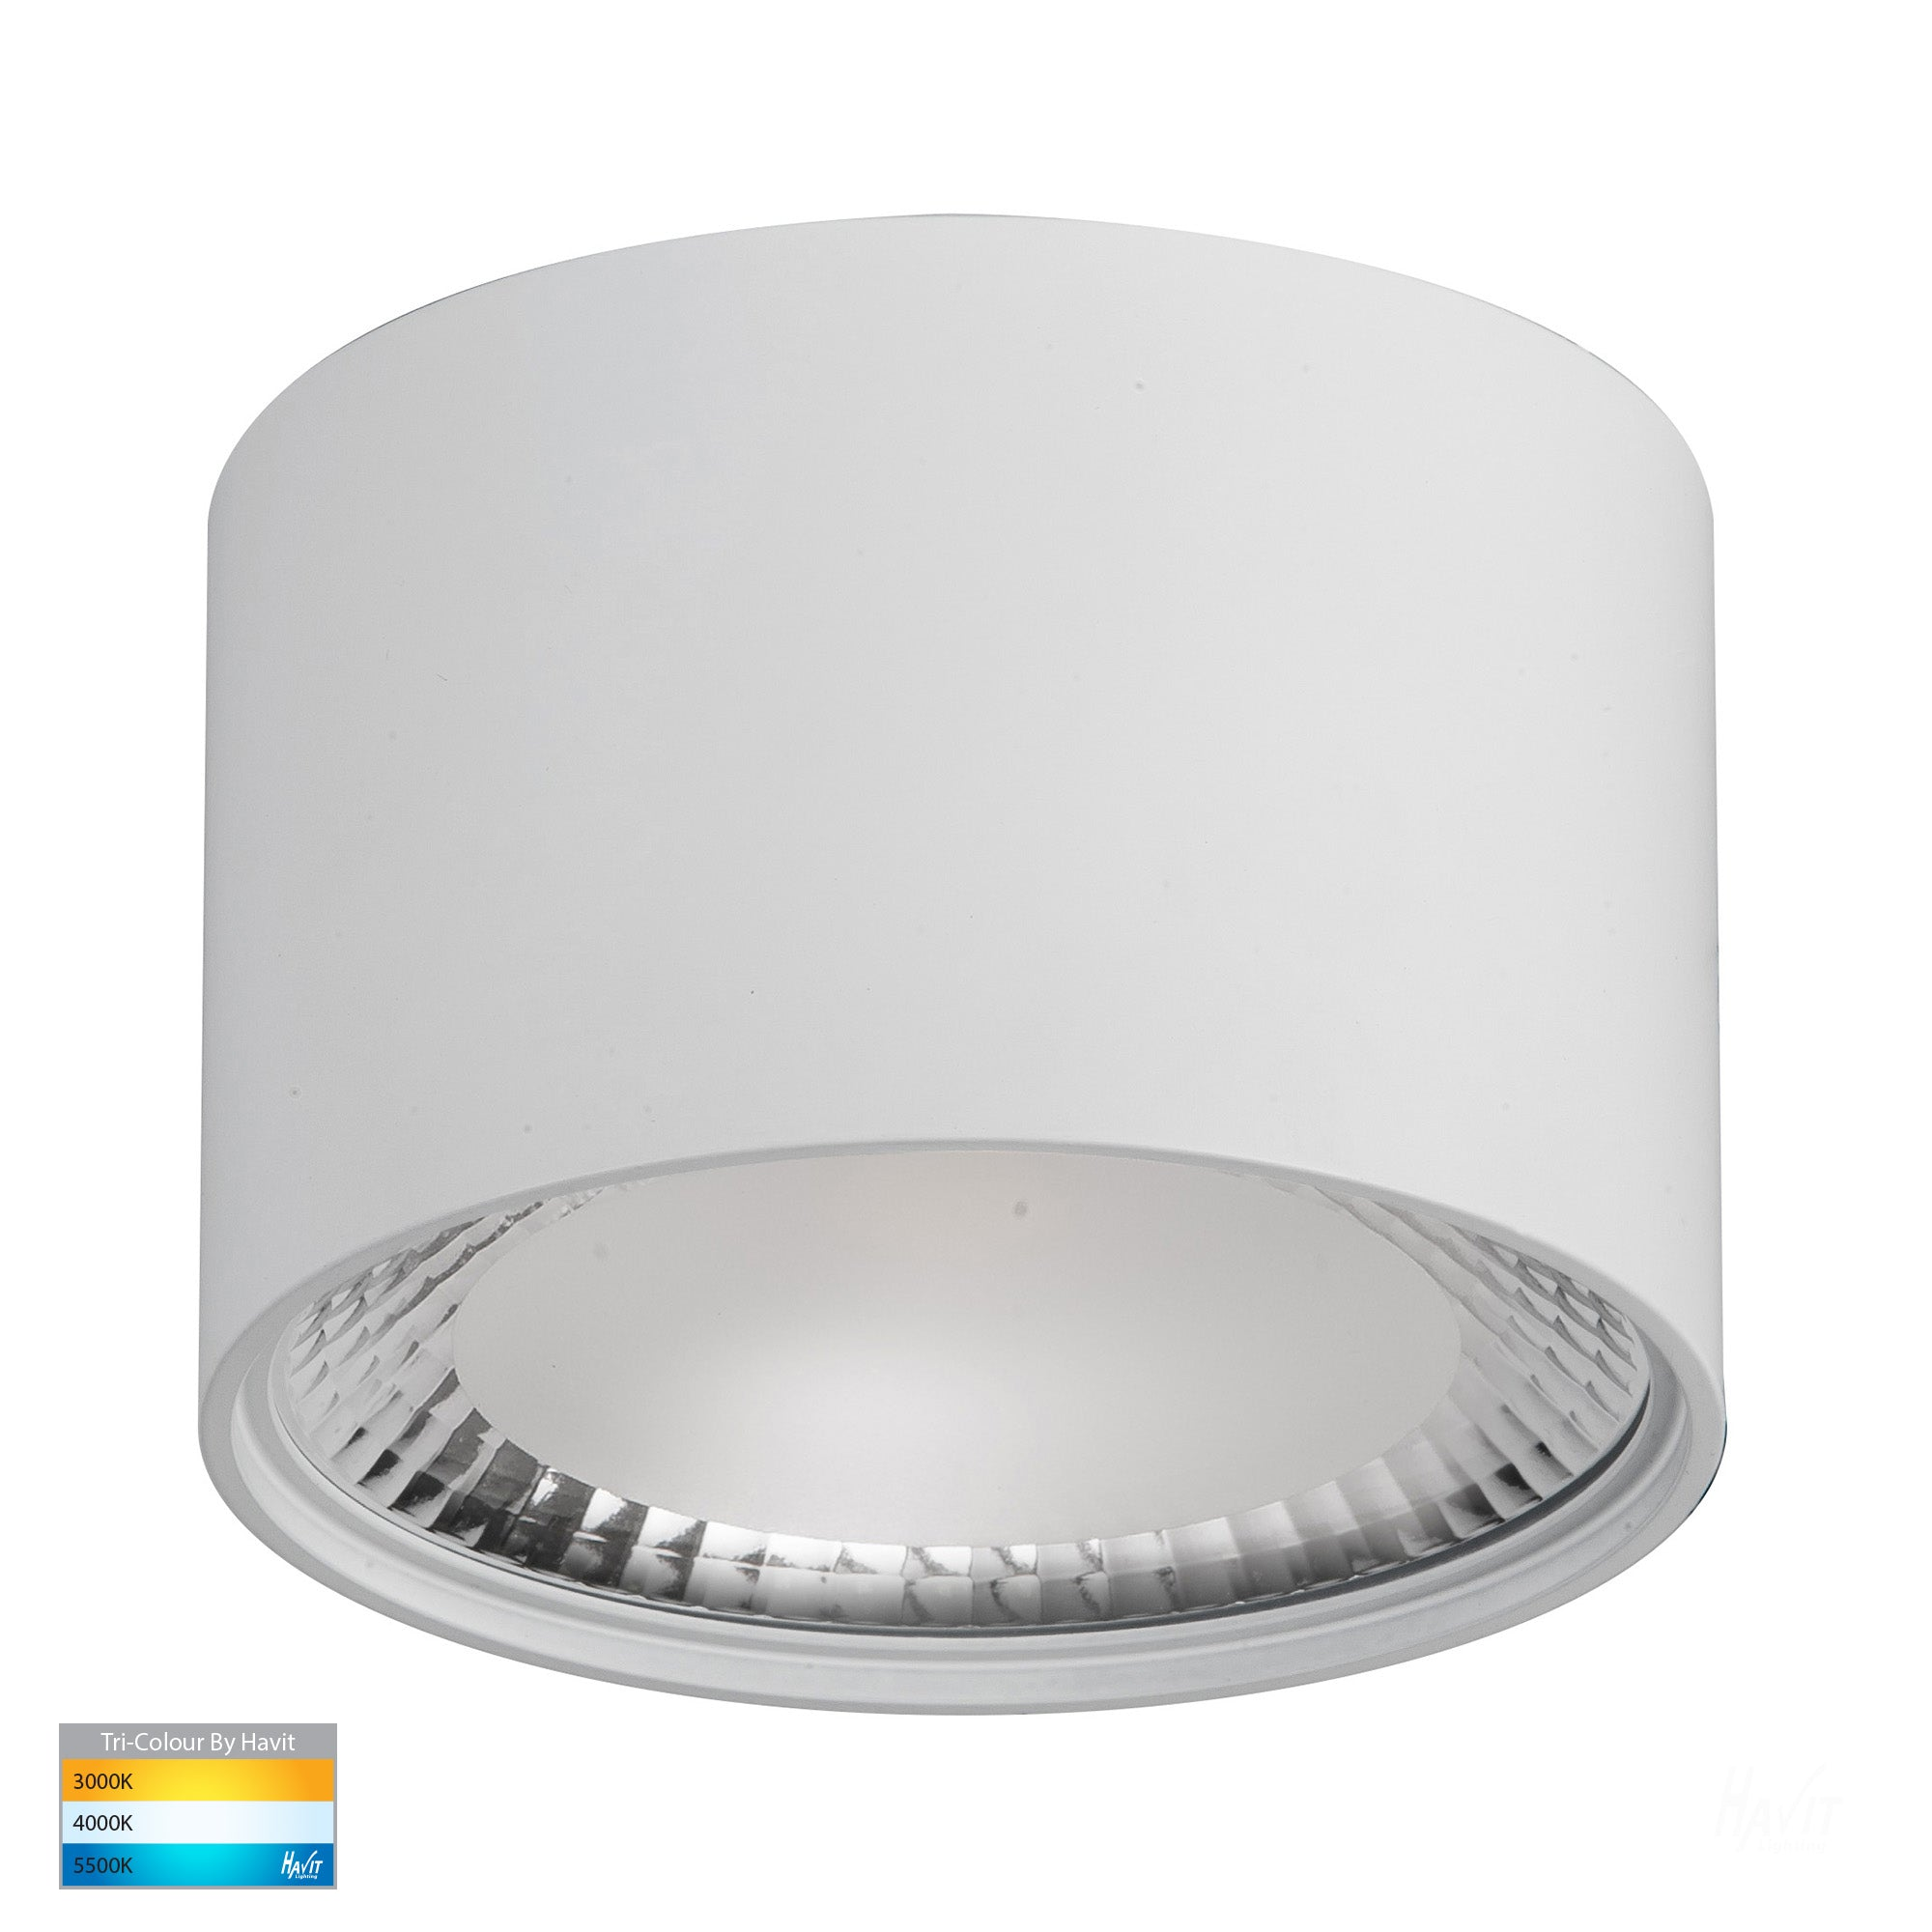 HV5803T-WHT - Nella White 12w Surface Mounted LED Downlight